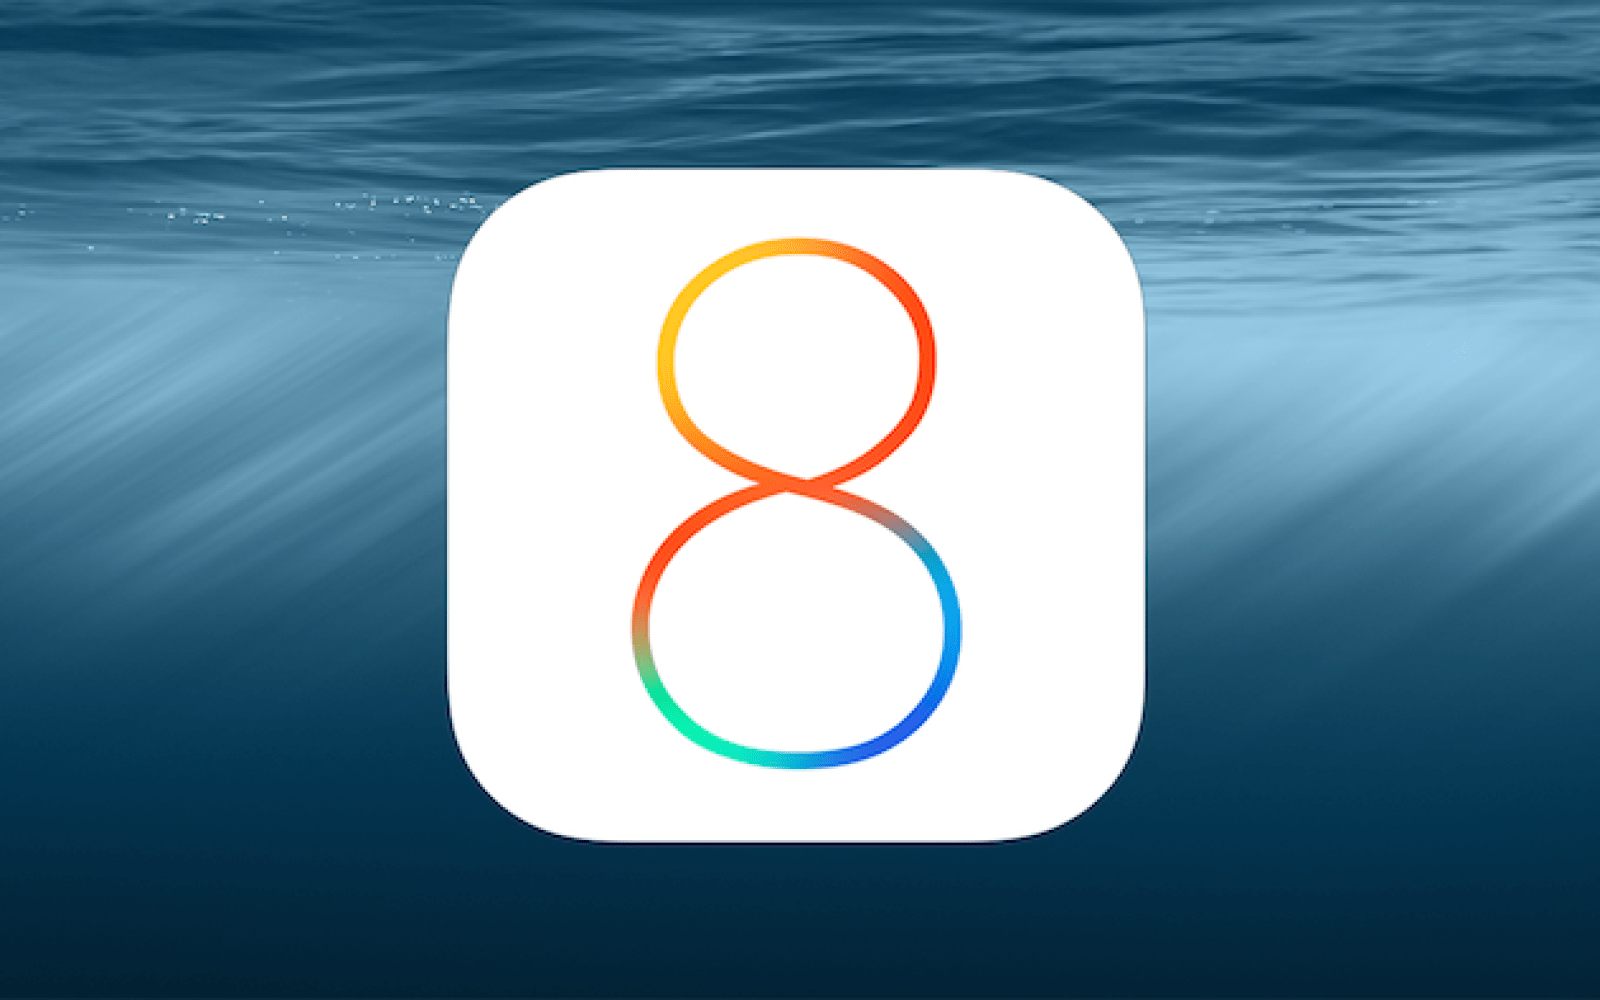 Apple releases iOS 8.0.1 with fixes, but many users reporting it breaks Cellular + Touch ID